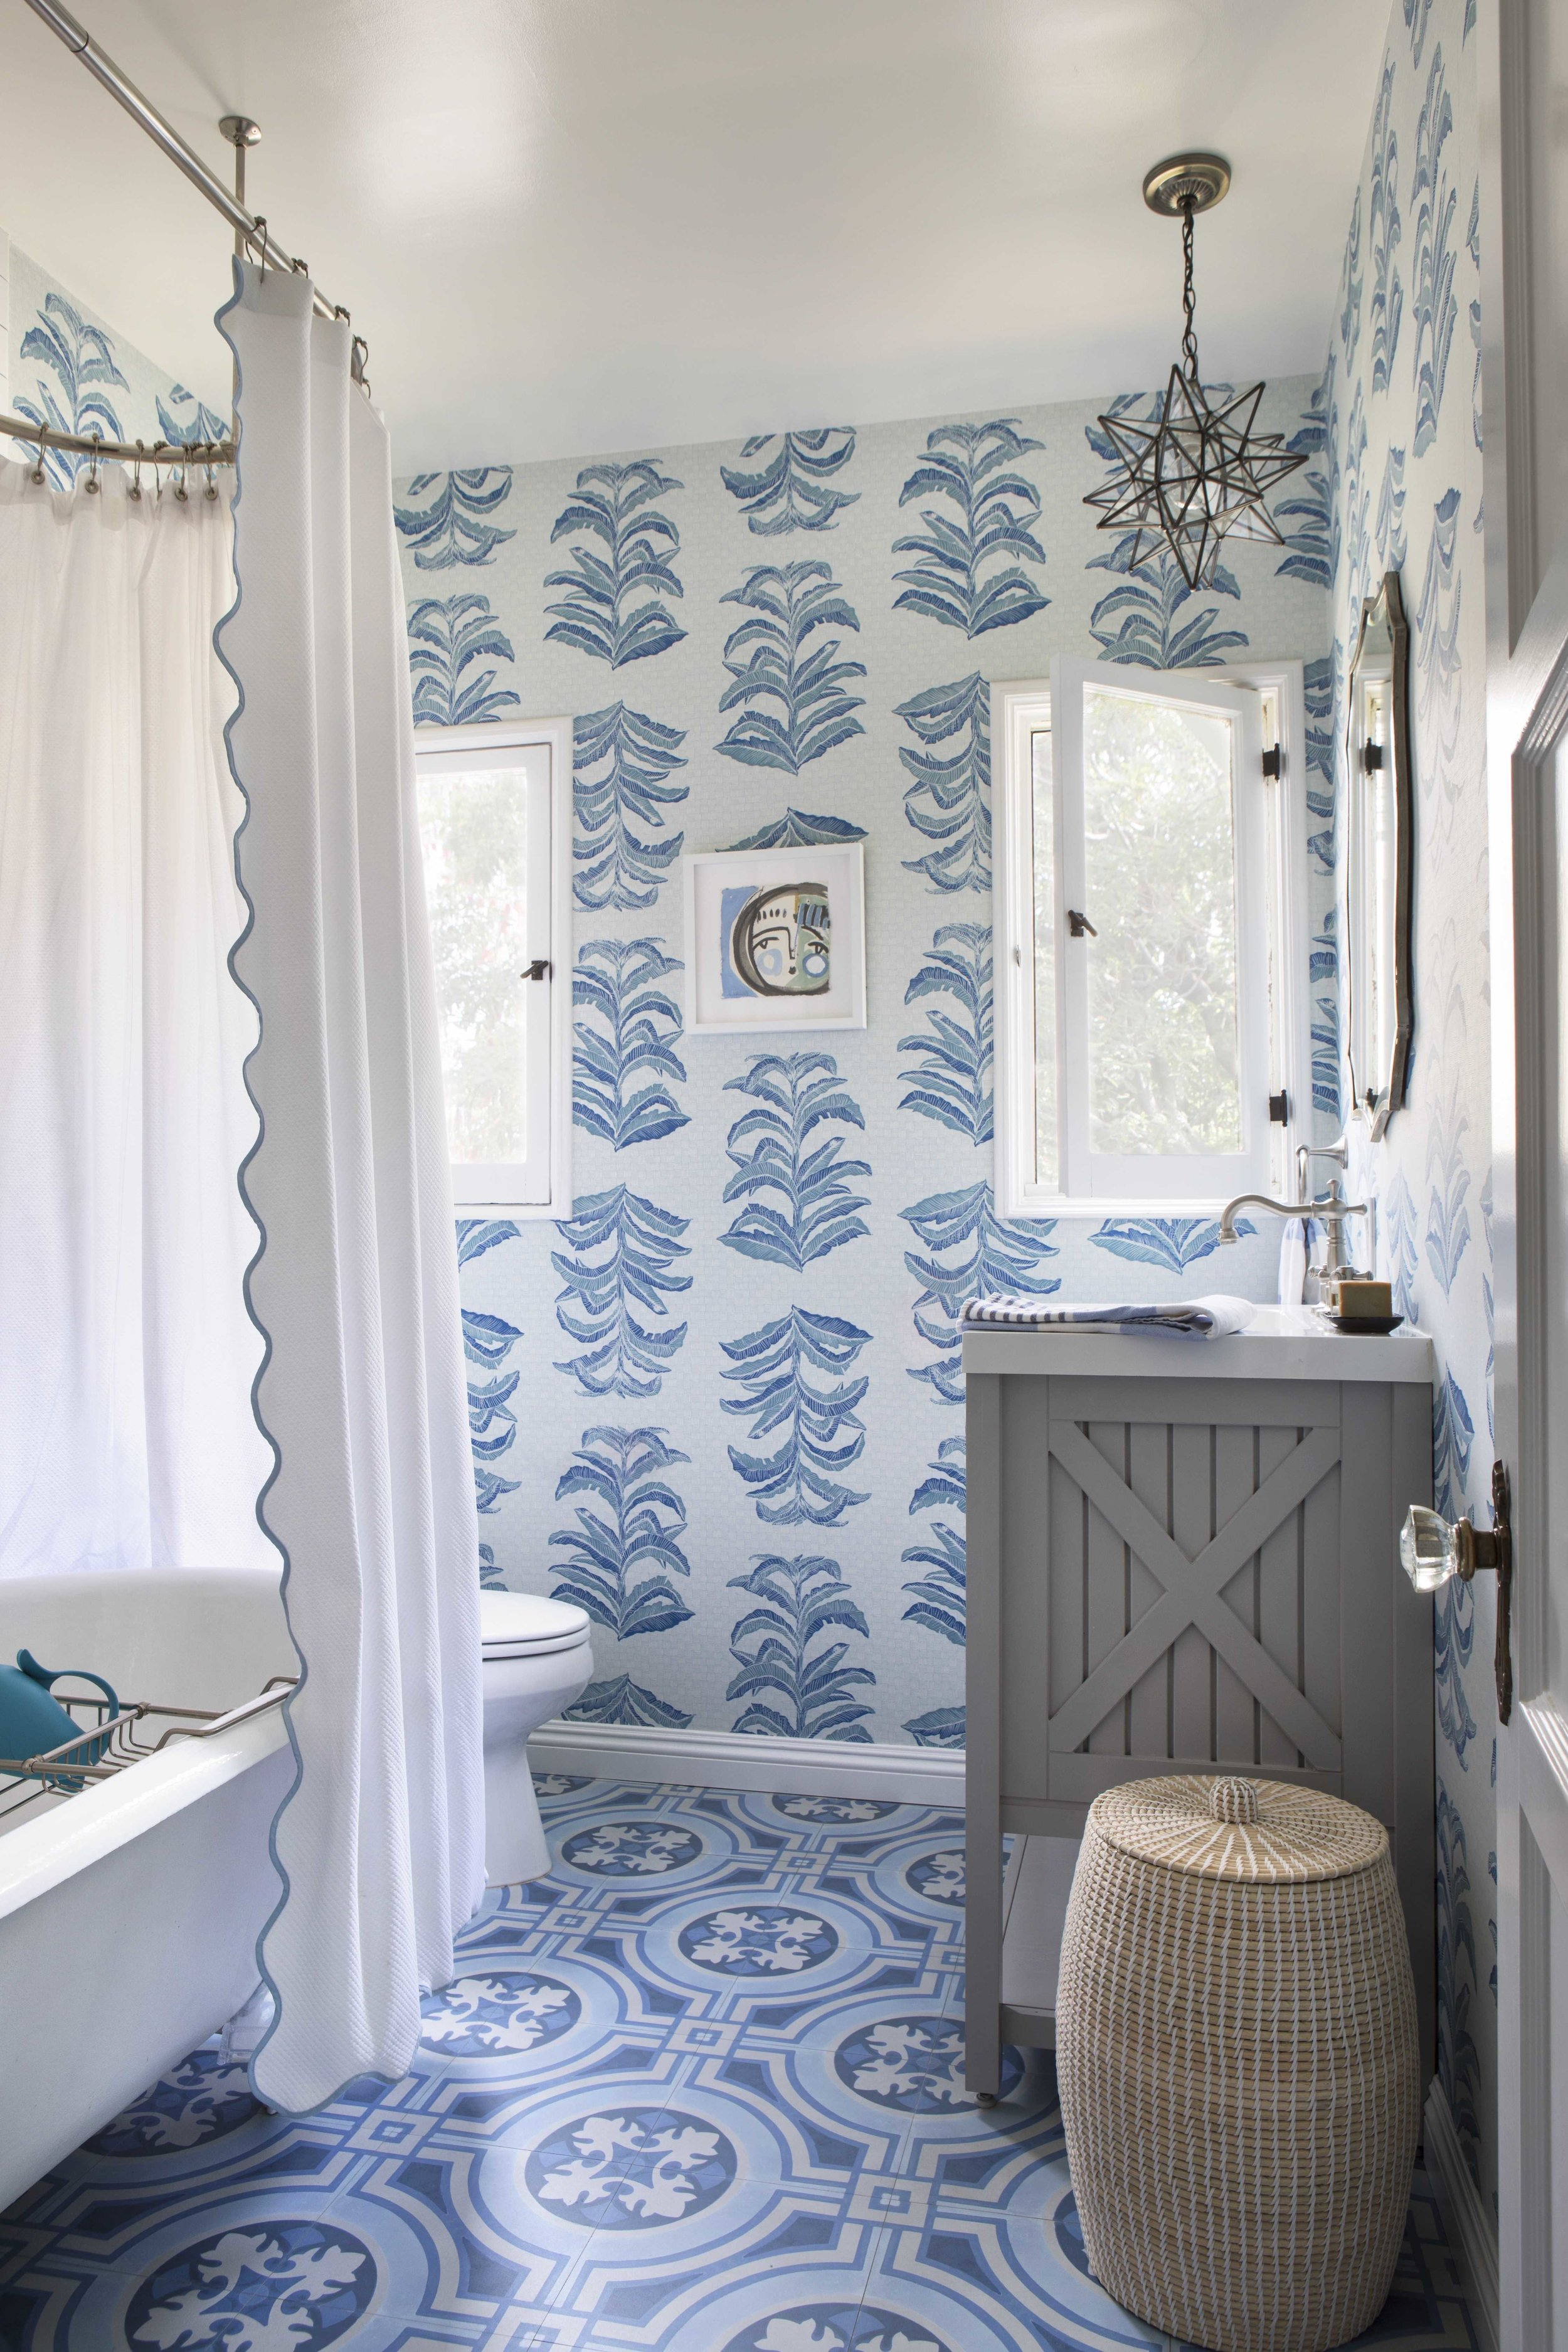 Banana Leaf Wallpaper in Sapphire, Interiors by Paige Pierce, Photo by Karyn Millet